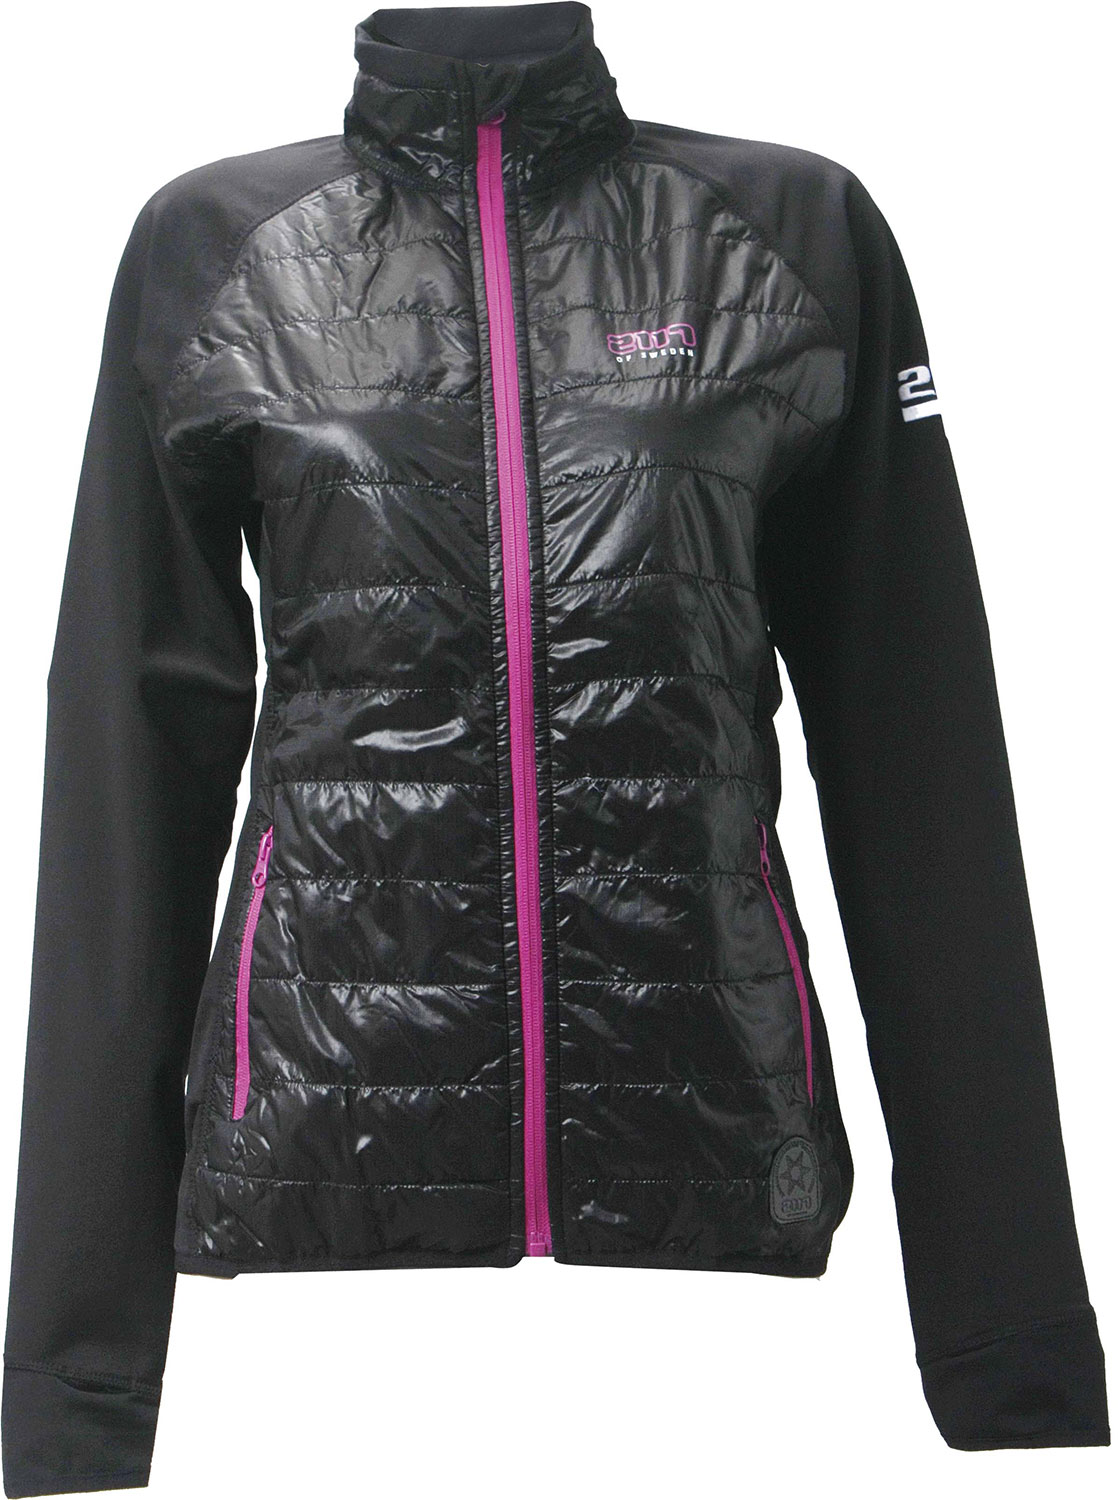 Wear it on cool fall days or layer it under a shell when things get really cold. The Smaland Hybrid has power fleece stretch fabric under and down the arms for fantastic range of motion and comfort while the bodice is lighted insulated and quilted for added warmth. This combination gives the Smaland Hybrid Jacket the look that you just got off the trail and yet you will look like you are ready for dinner out with friends, now that is versatility.Key Features of the 2117 Smaland Jacket: 8,000mm Waterproof 3,000g Breathability Sporty down jacket Two side pockets Elastic trimming in sleeve end, hood and waist 80/ 20 down of European first class qulity Wind and water resistant - $43.95